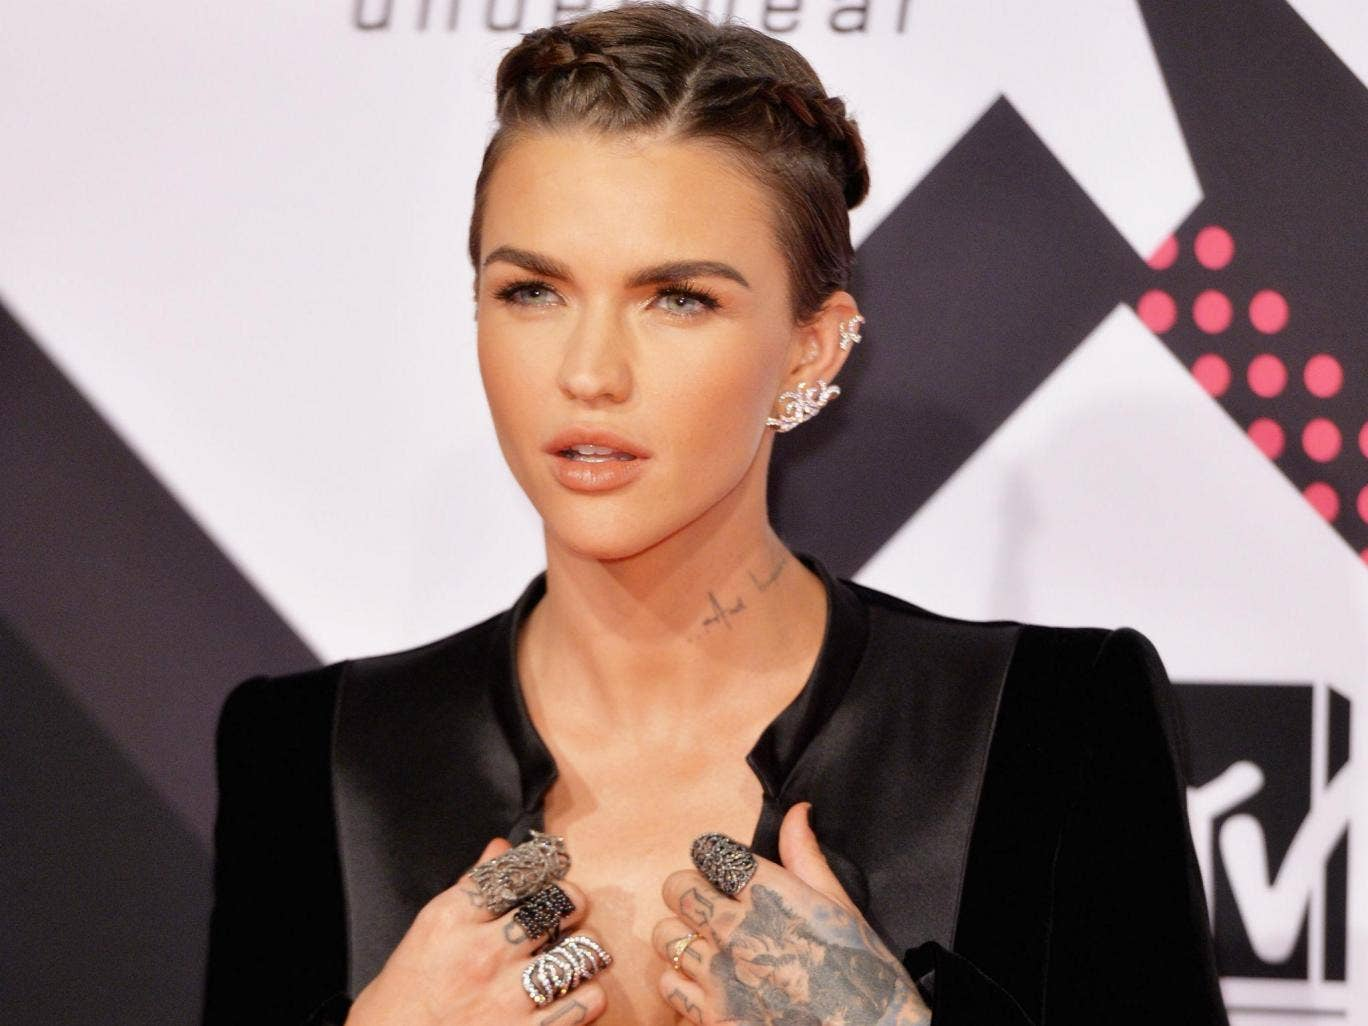 Ruby Rose Lauded For Promoting Gender Fluid Movement At